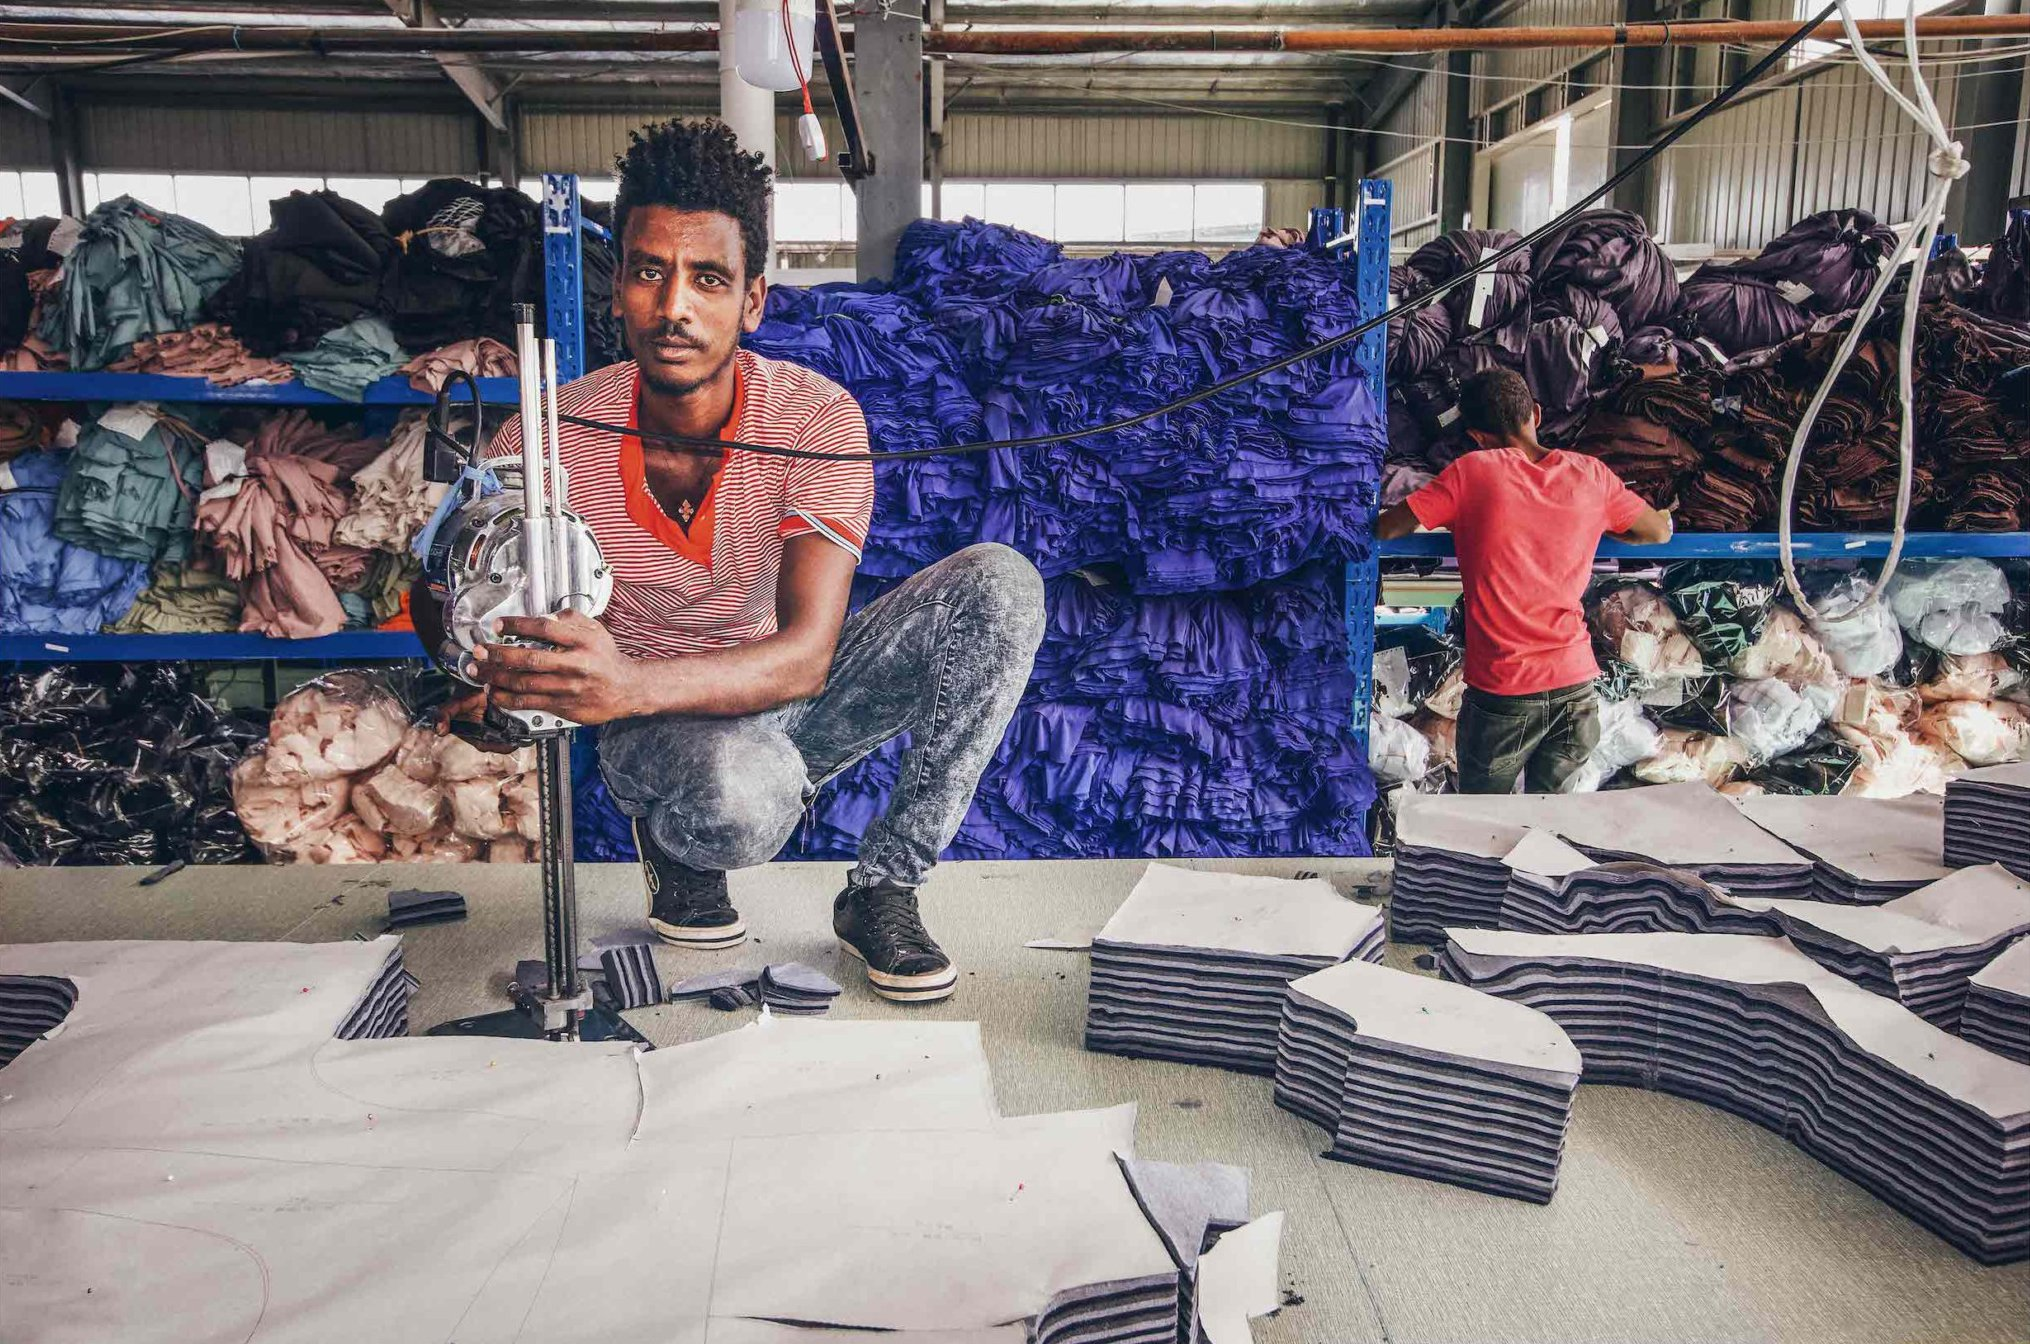 Textile factory worker, Ethiopia, 2019